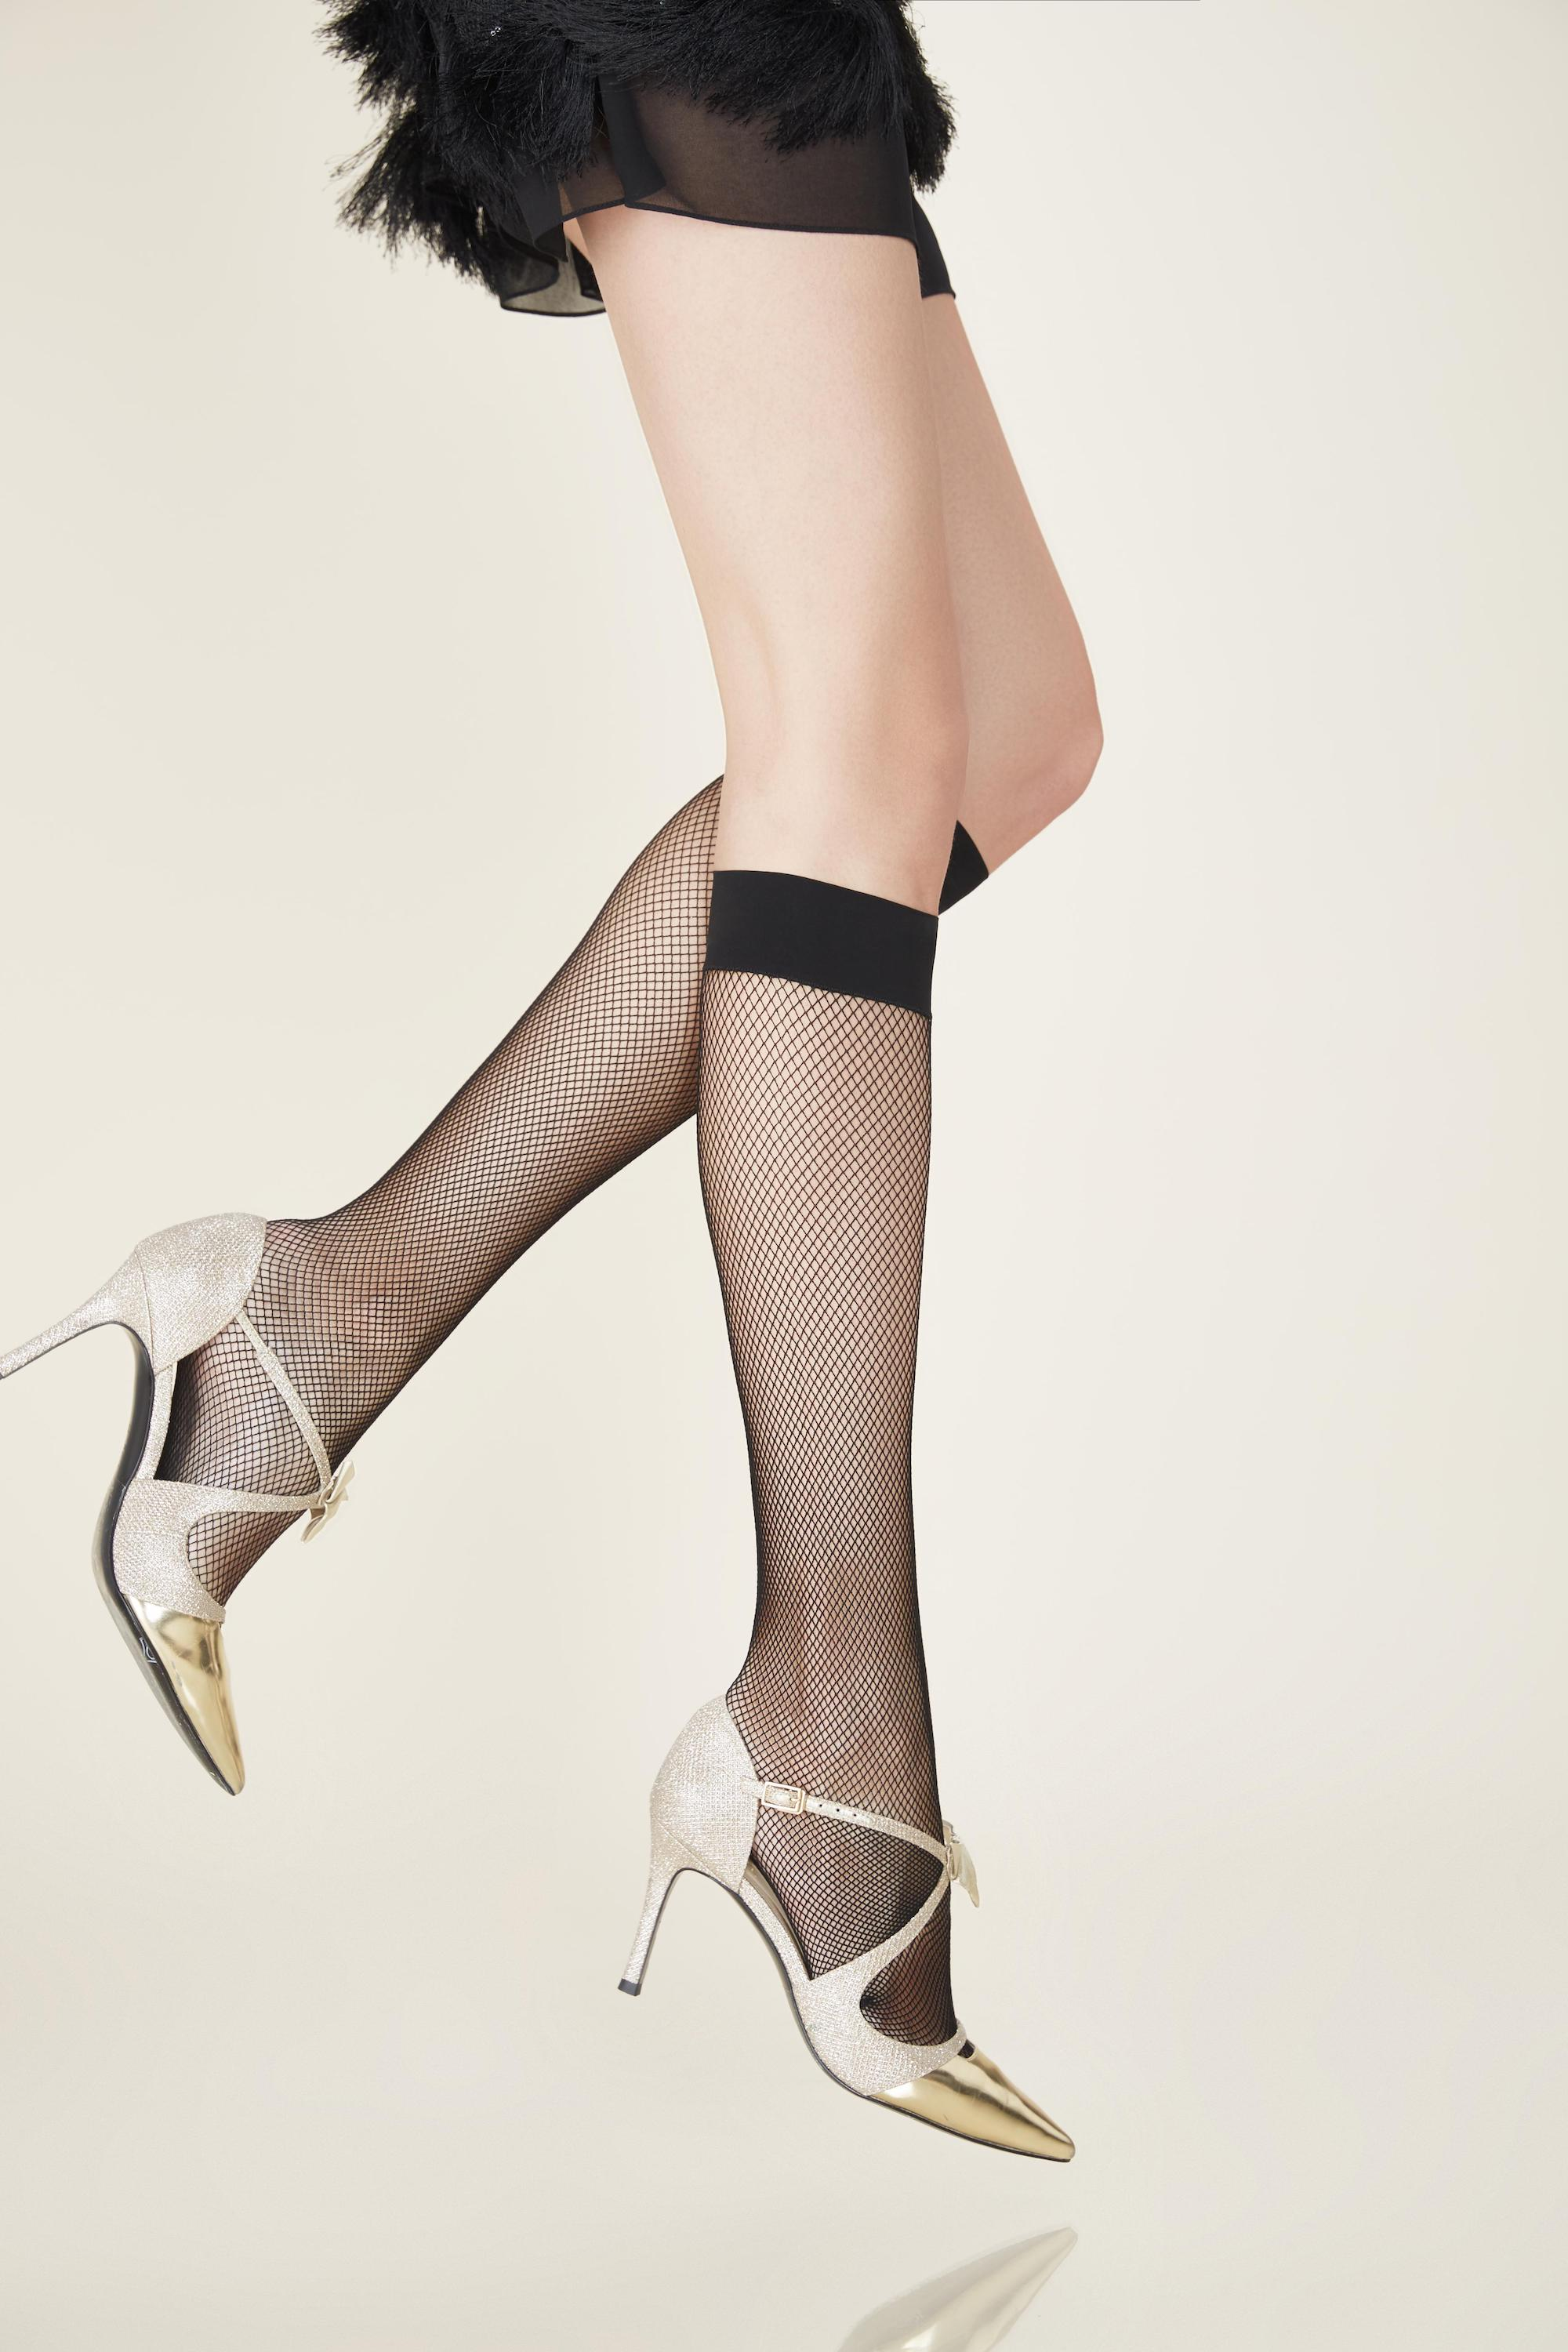 What gerbe mens pantyhose sorry, does